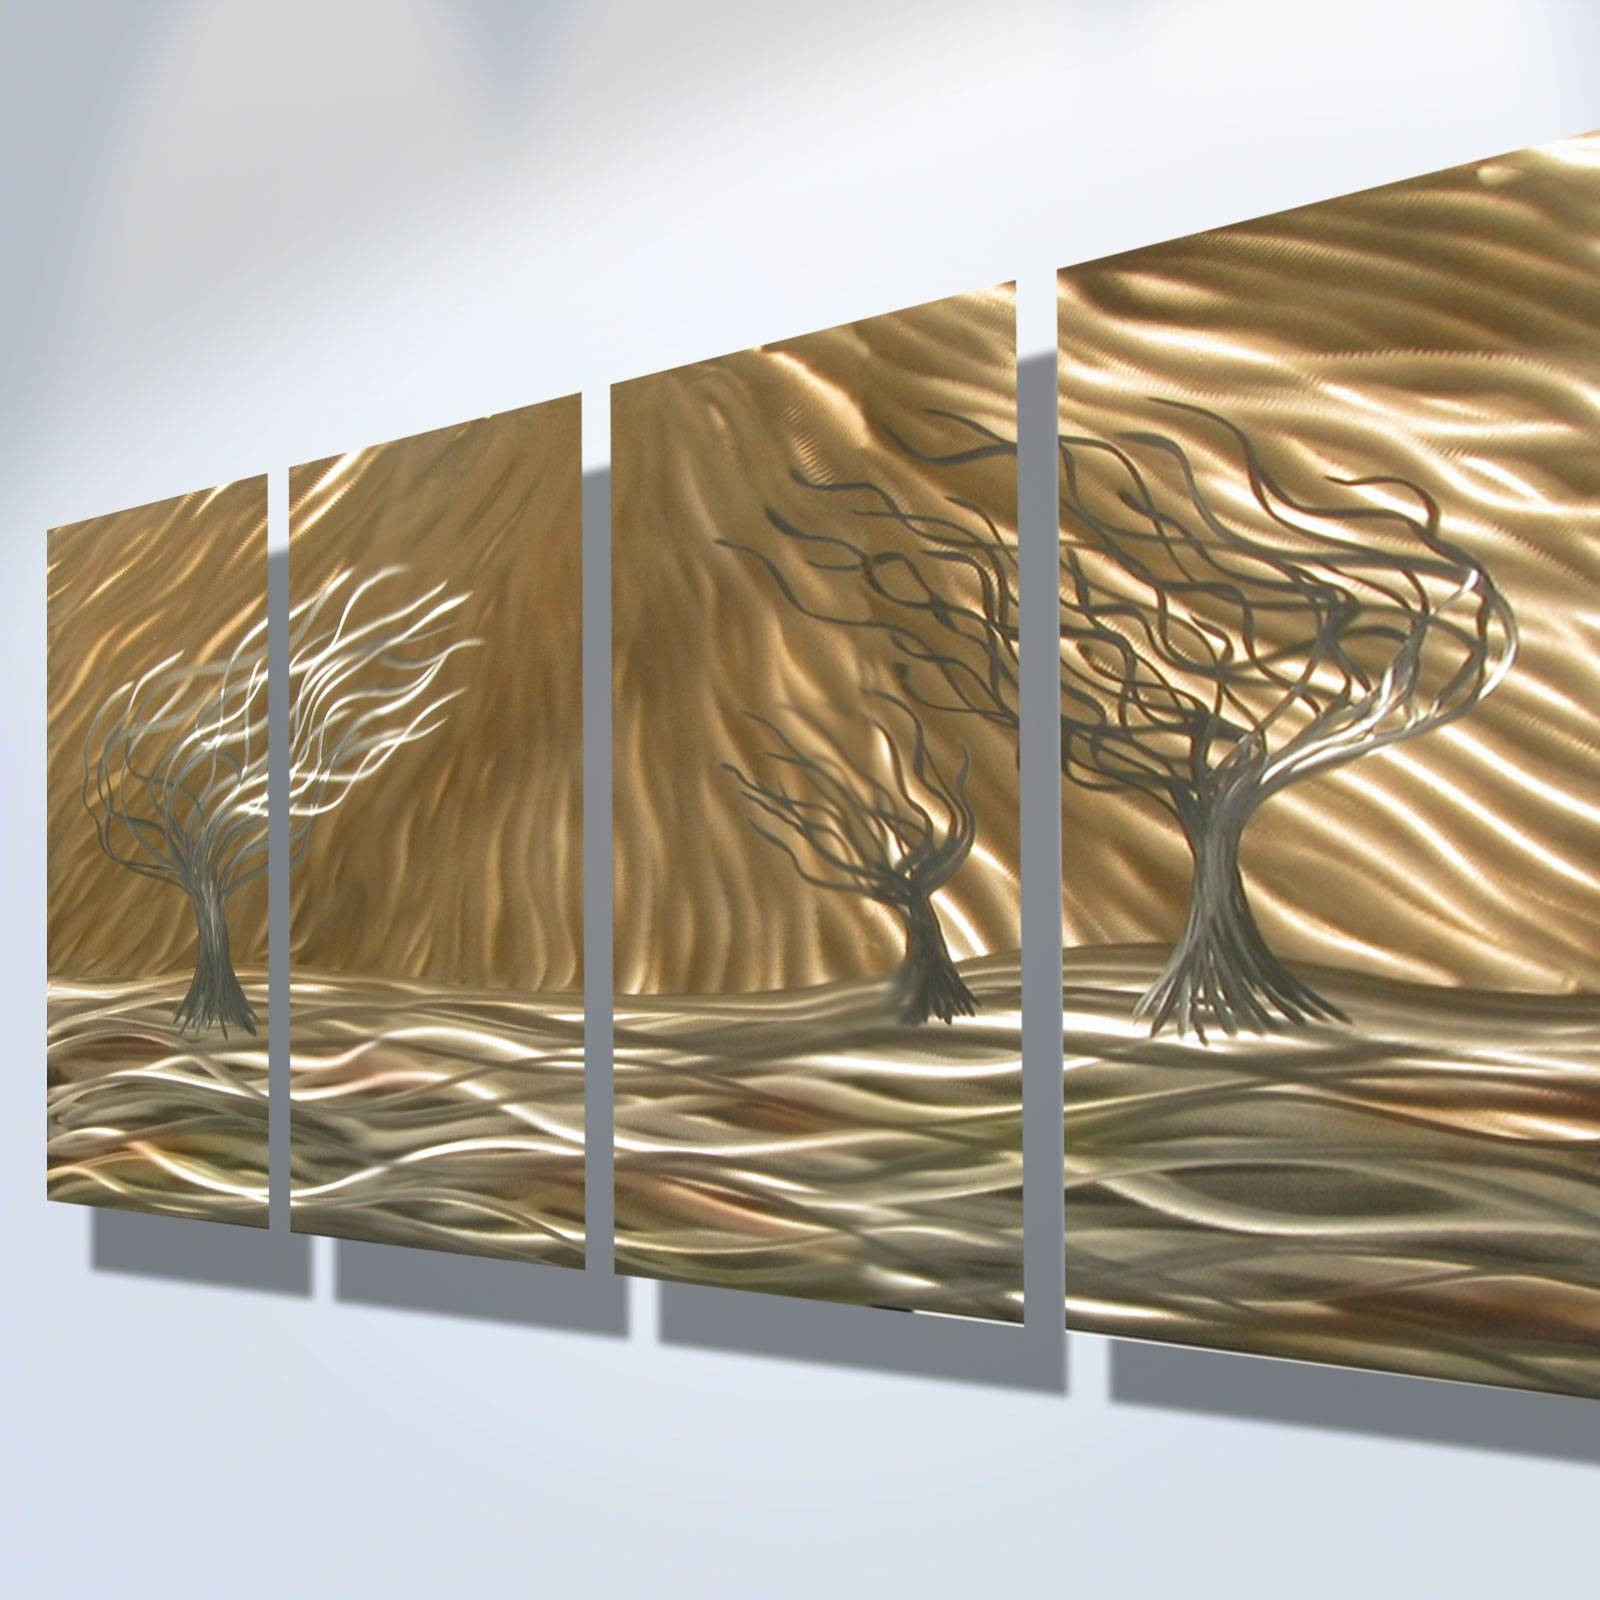 3 Trees 4 Panel – Abstract Metal Wall Art Contemporary Modern Inside Current Gold Metal Wall Art (View 1 of 20)